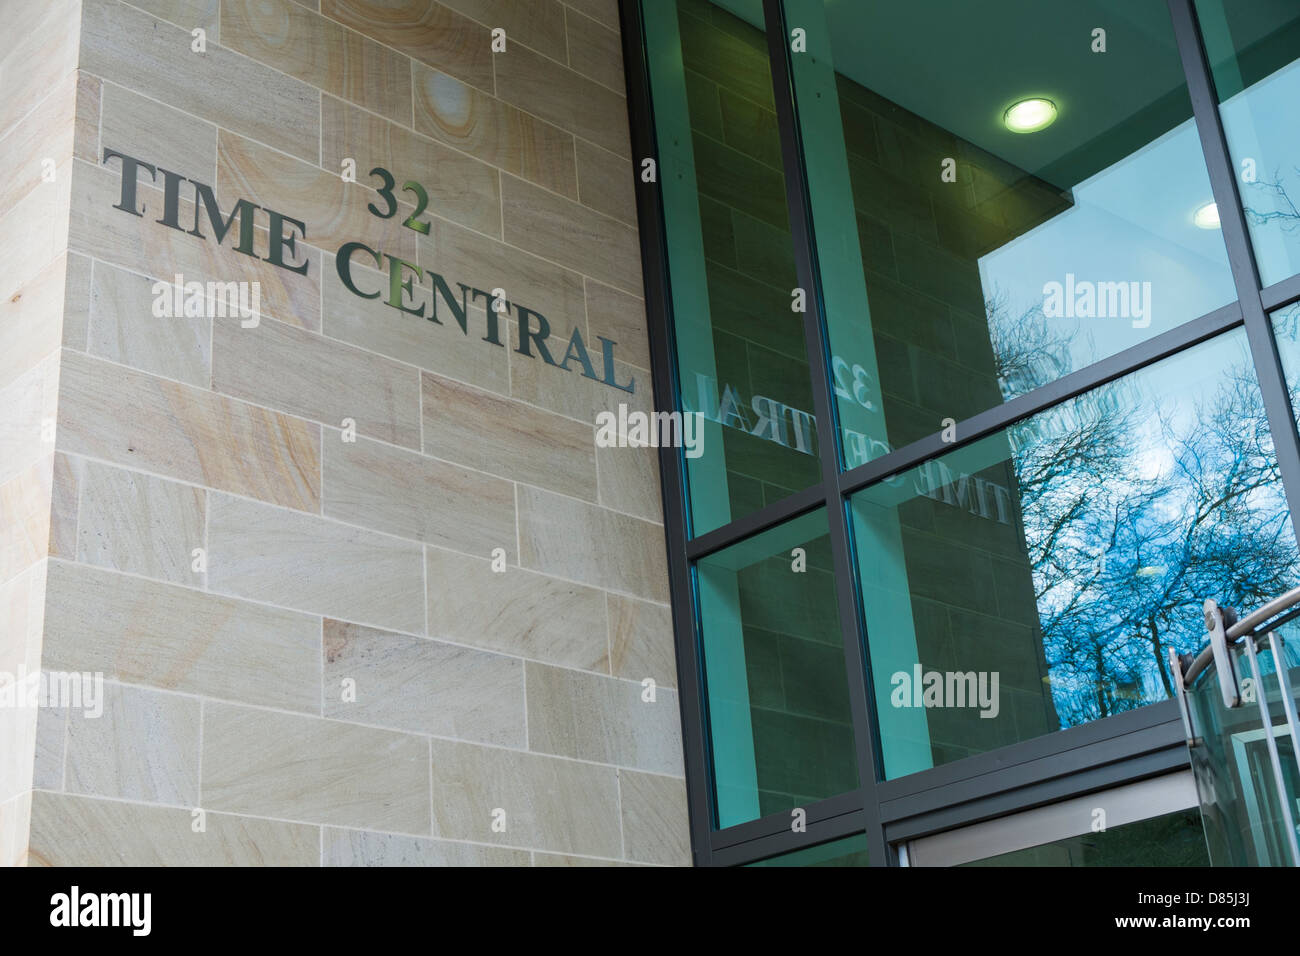 32 Time Central commercial premises. - Stock Image